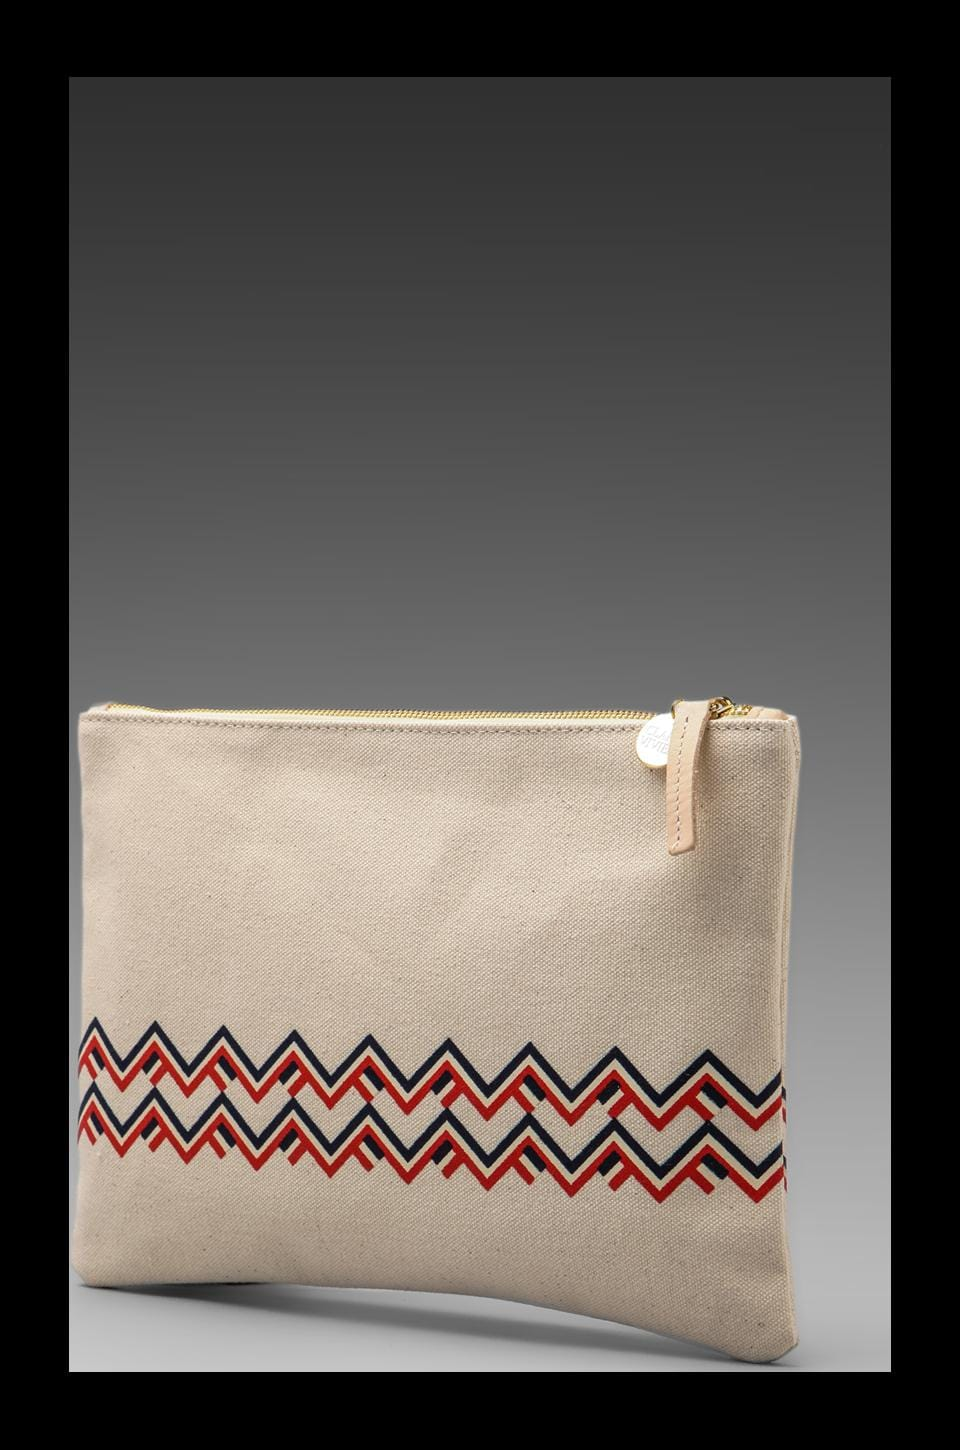 Clare V. Maison Canvas Flat Clutch in Canvas & Chevron Print